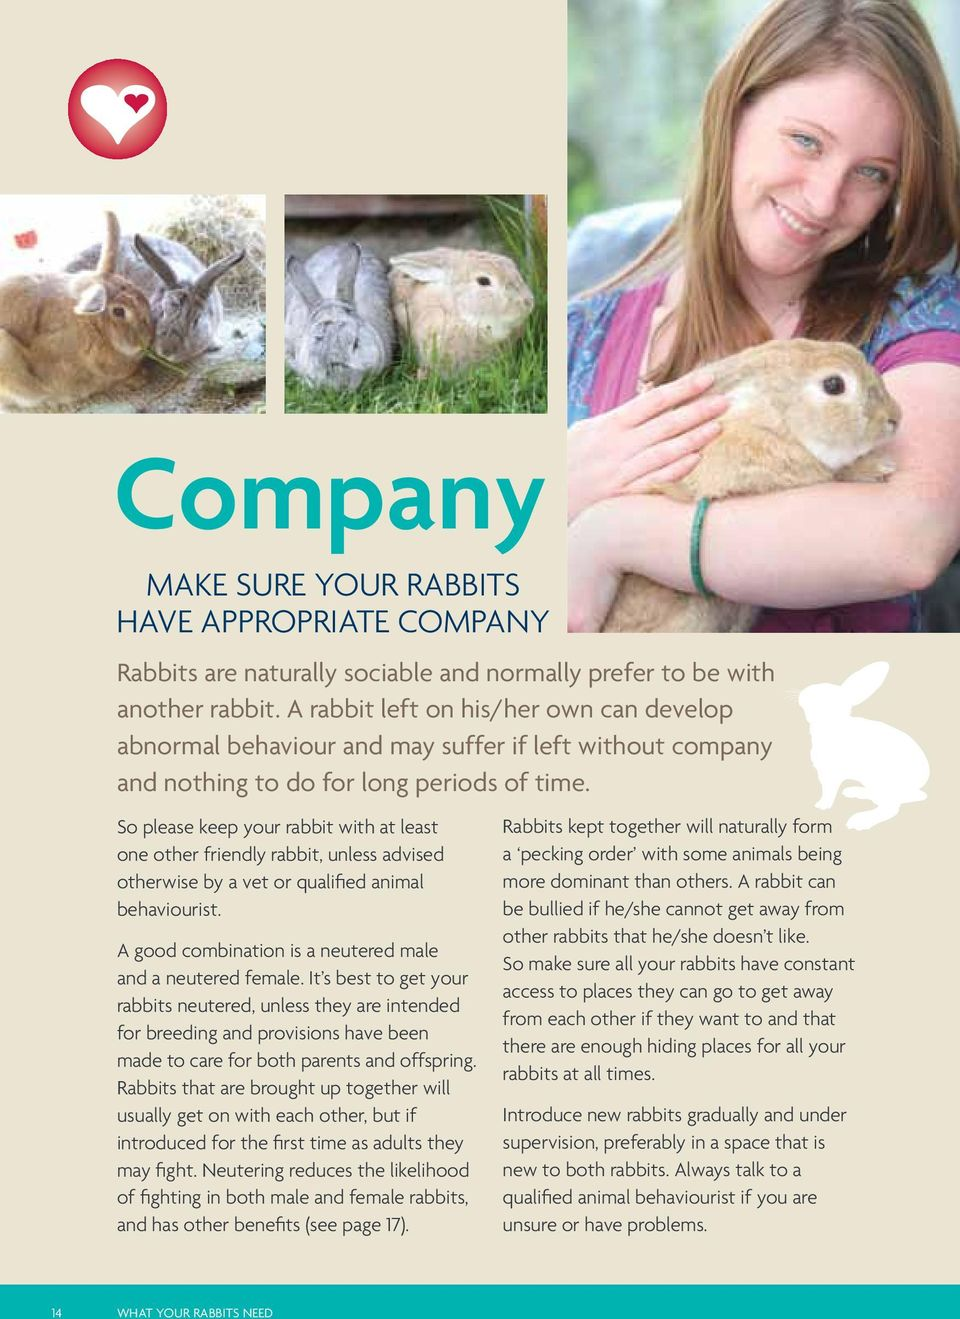 So please keep your rabbit with at least one other friendly rabbit, unless advised otherwise by a vet or qualified animal behaviourist. A good combination is a neutered male and a neutered female.